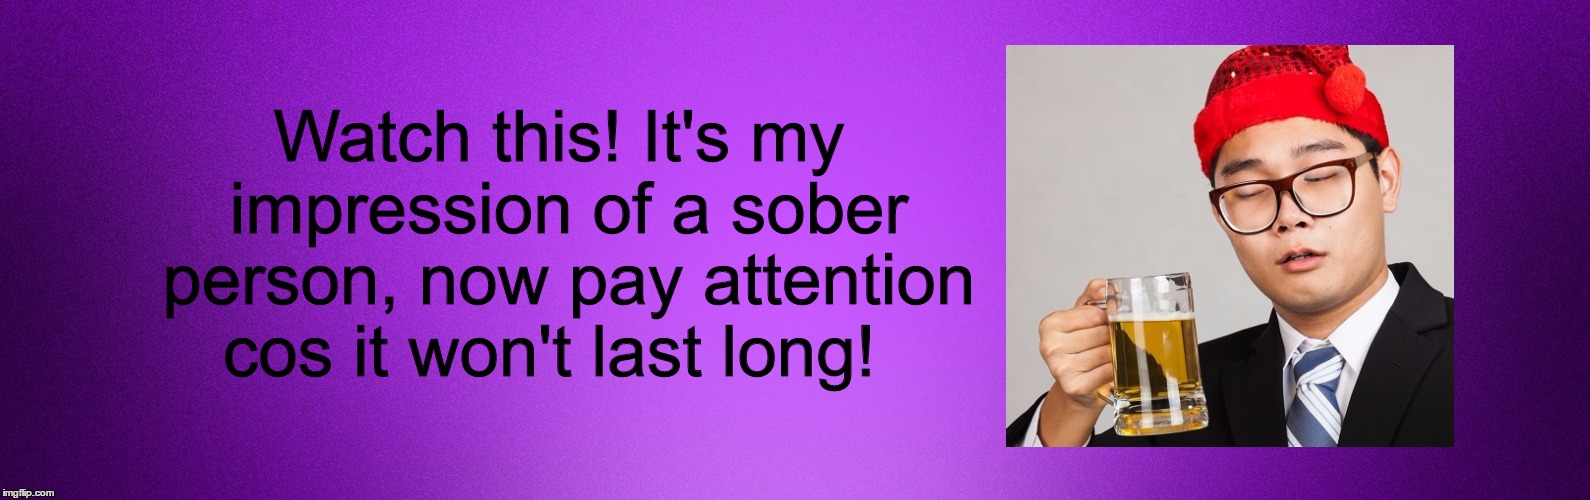 Sober Guy | Watch this! It's my impression of a sober person, now pay attention cos it won't last long! | image tagged in sober,drunk,go home youre drunk,you're drunk,drunk guy | made w/ Imgflip meme maker